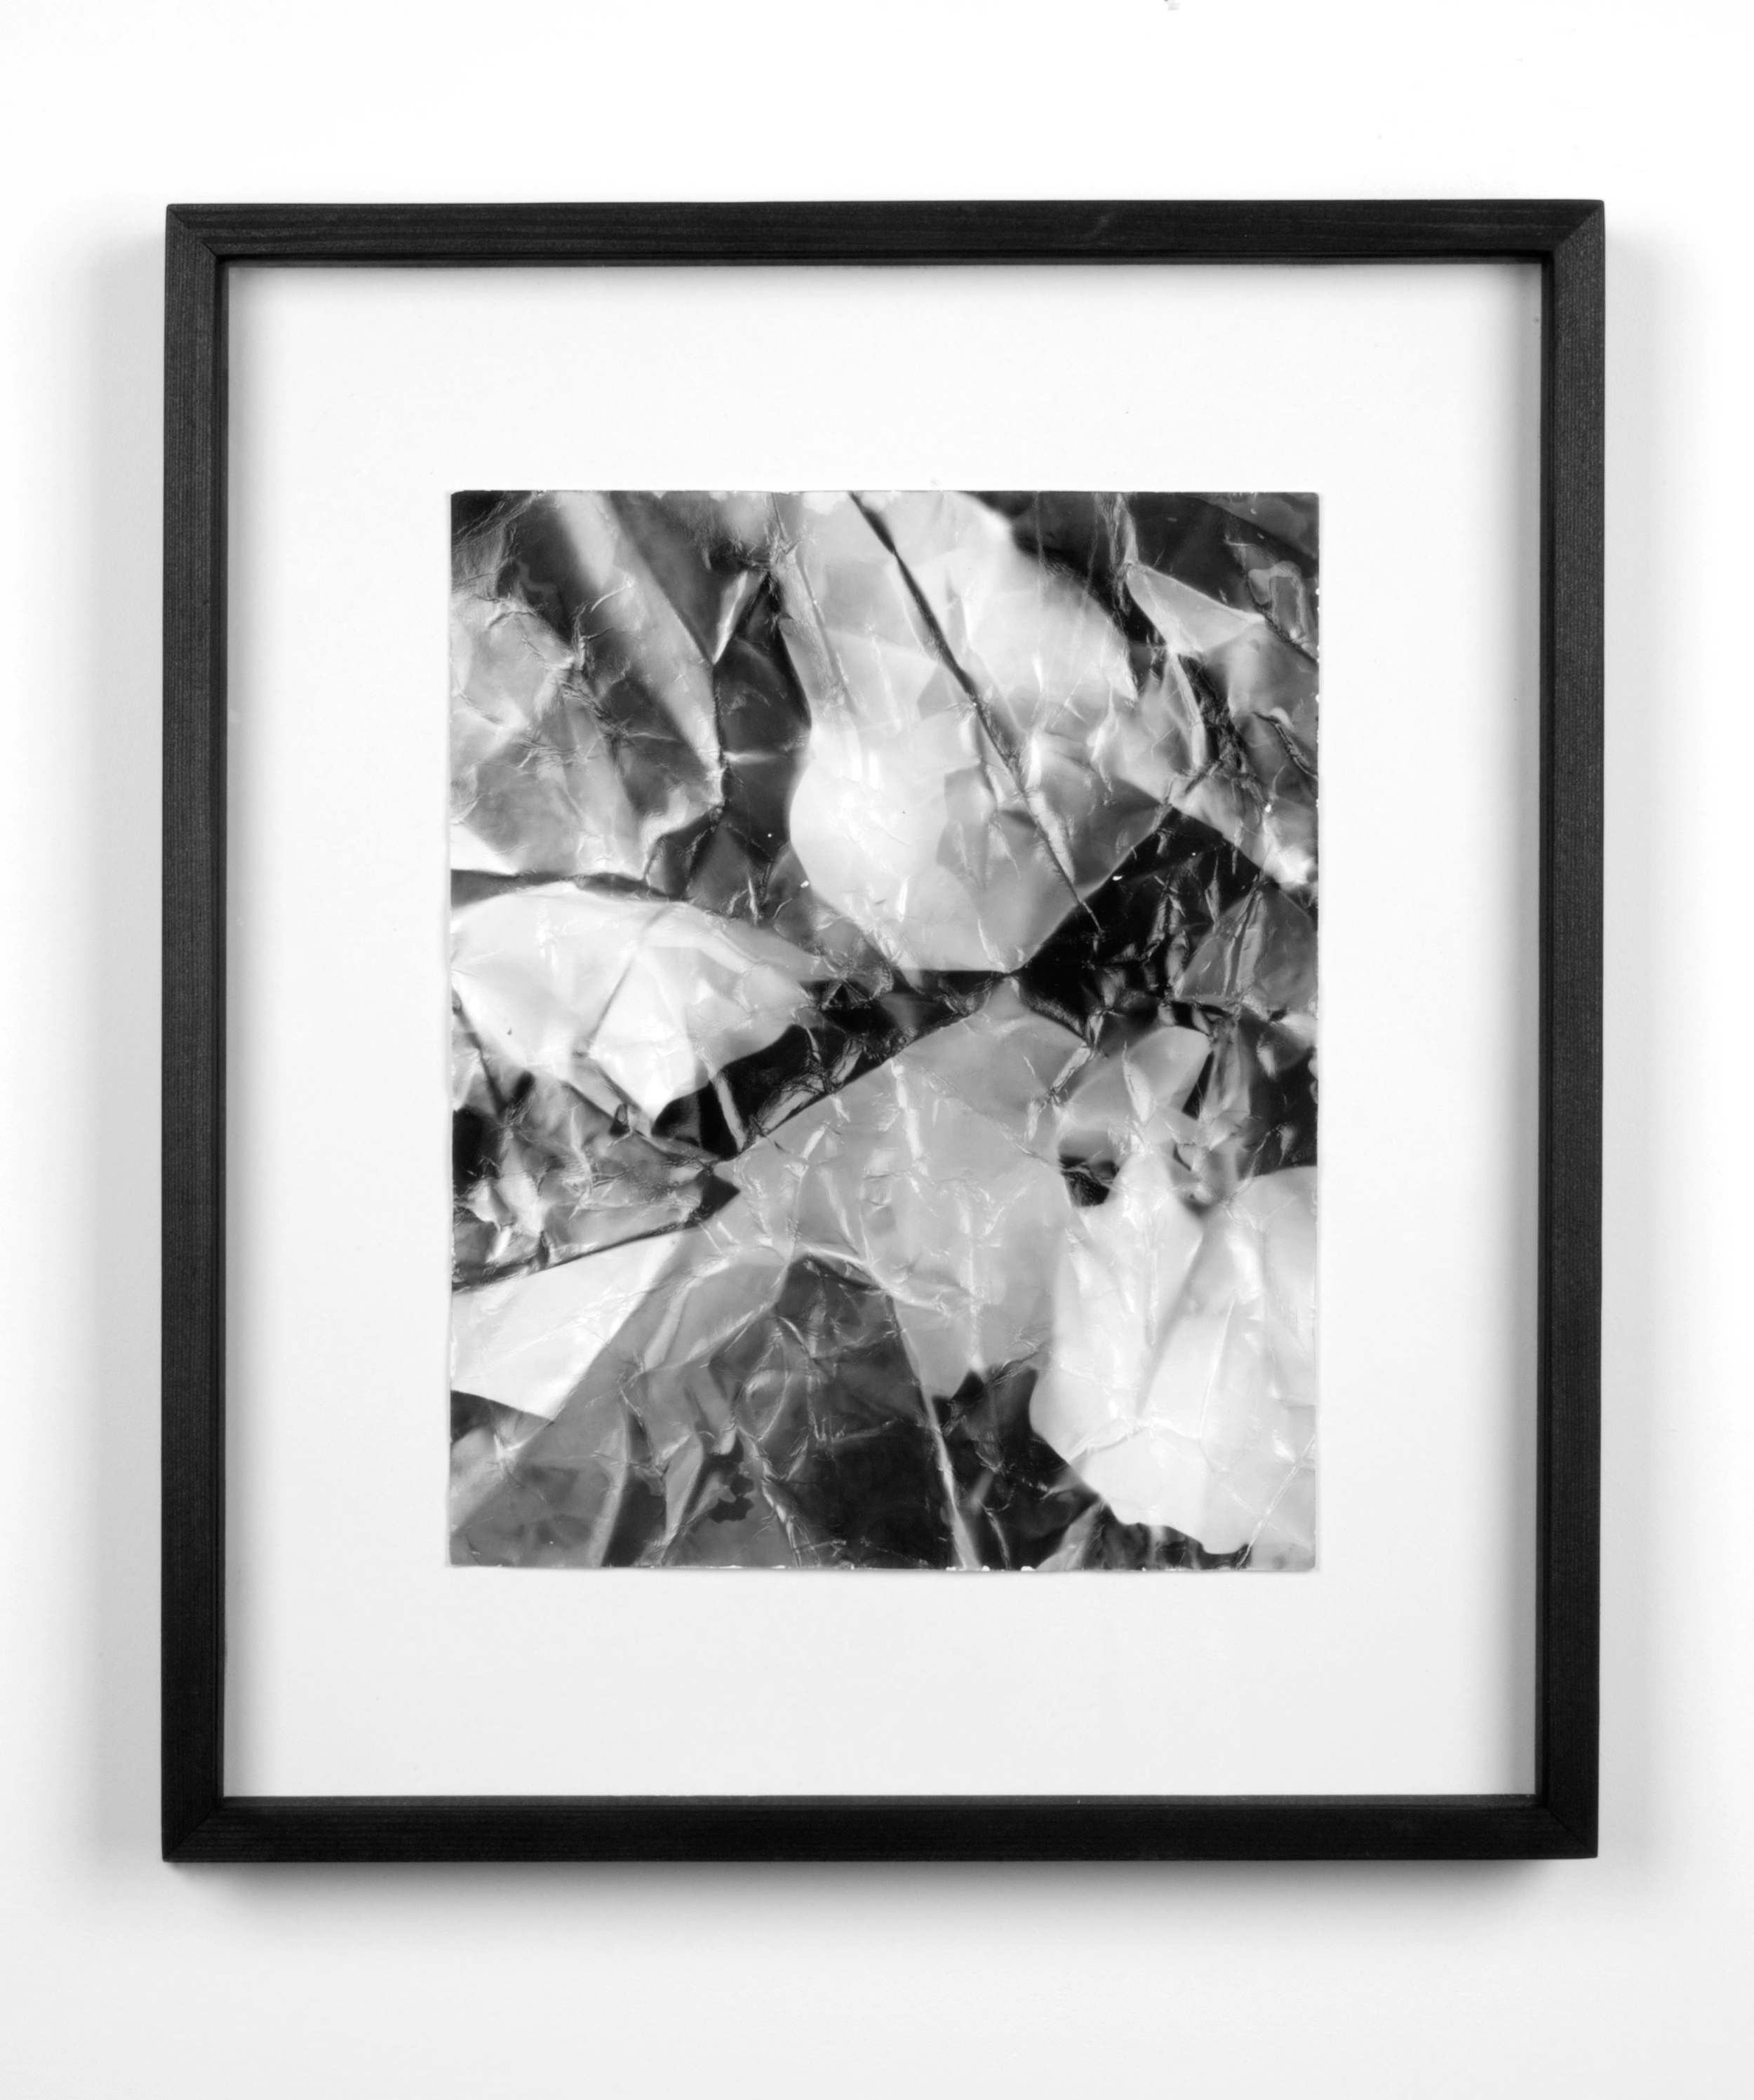 Picture Made by My Hand with the Assistance of Light    2011   Black and white fiber based photographic paper  14 7/8 x 12 7/8 inches   A Diagram of Forces, 2011